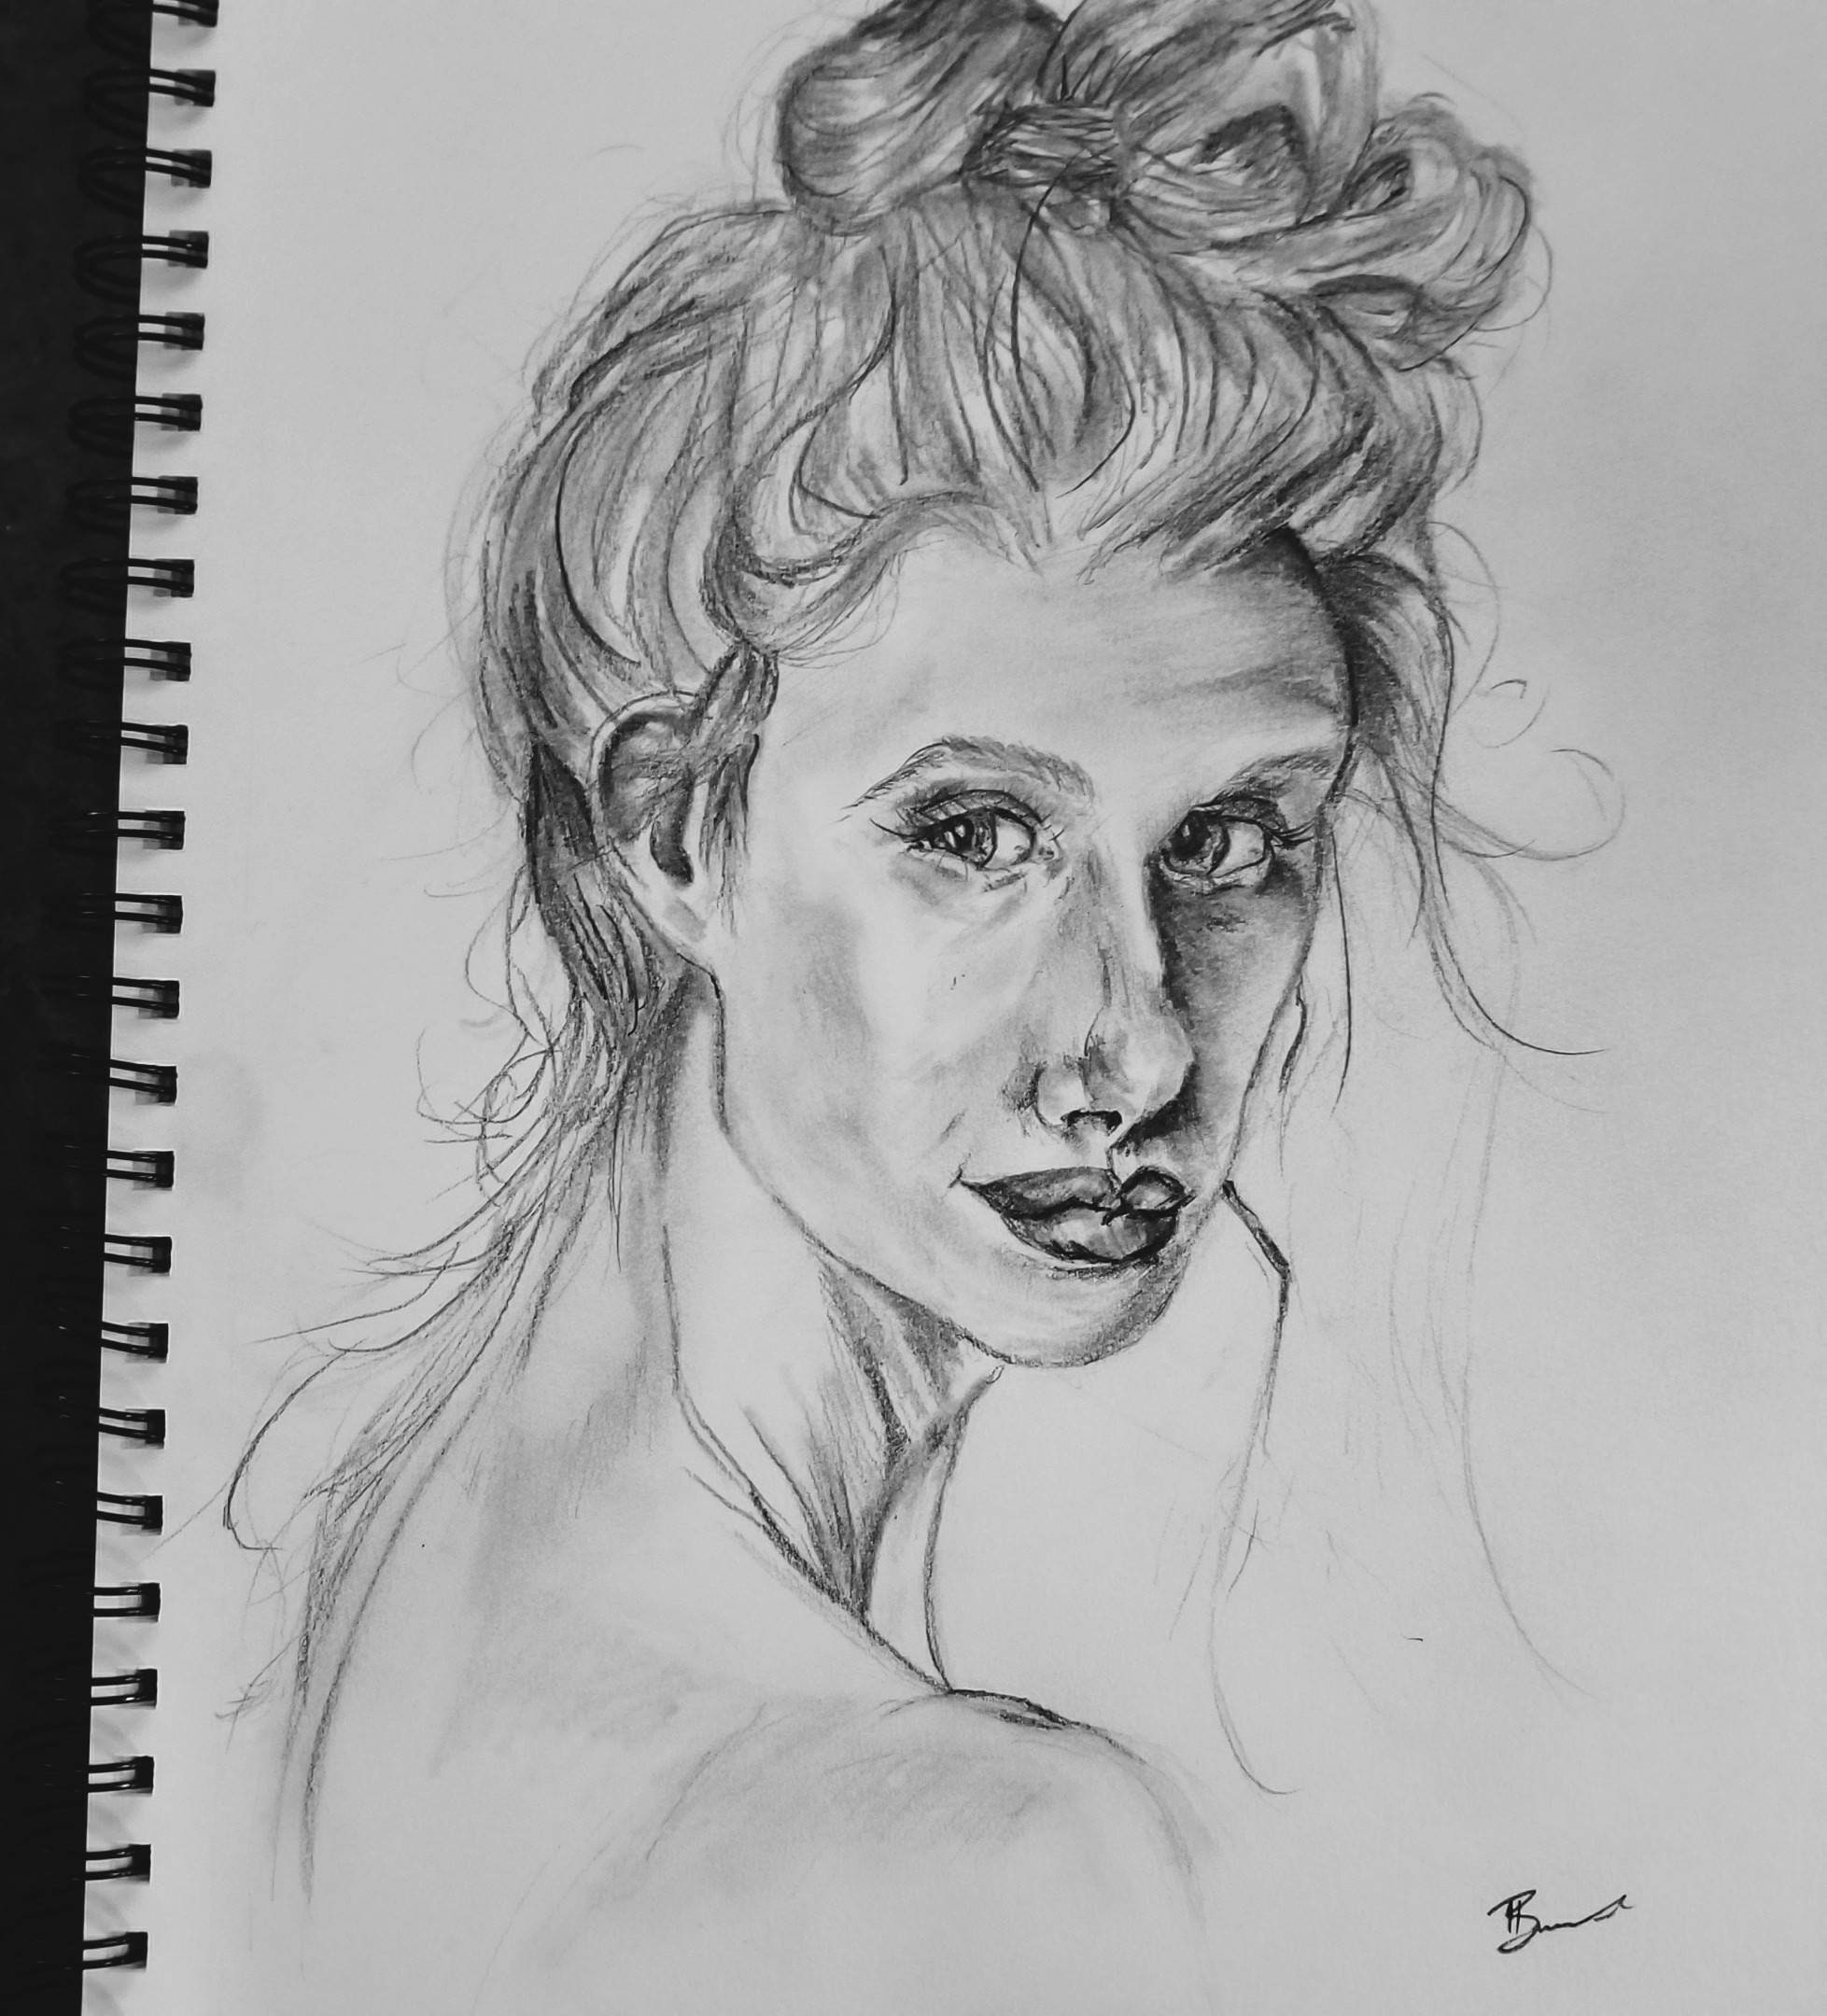 Original portrait drawing graphite pencil 11x14 inches mixed media paper black and white contrasting image photo reference great gift